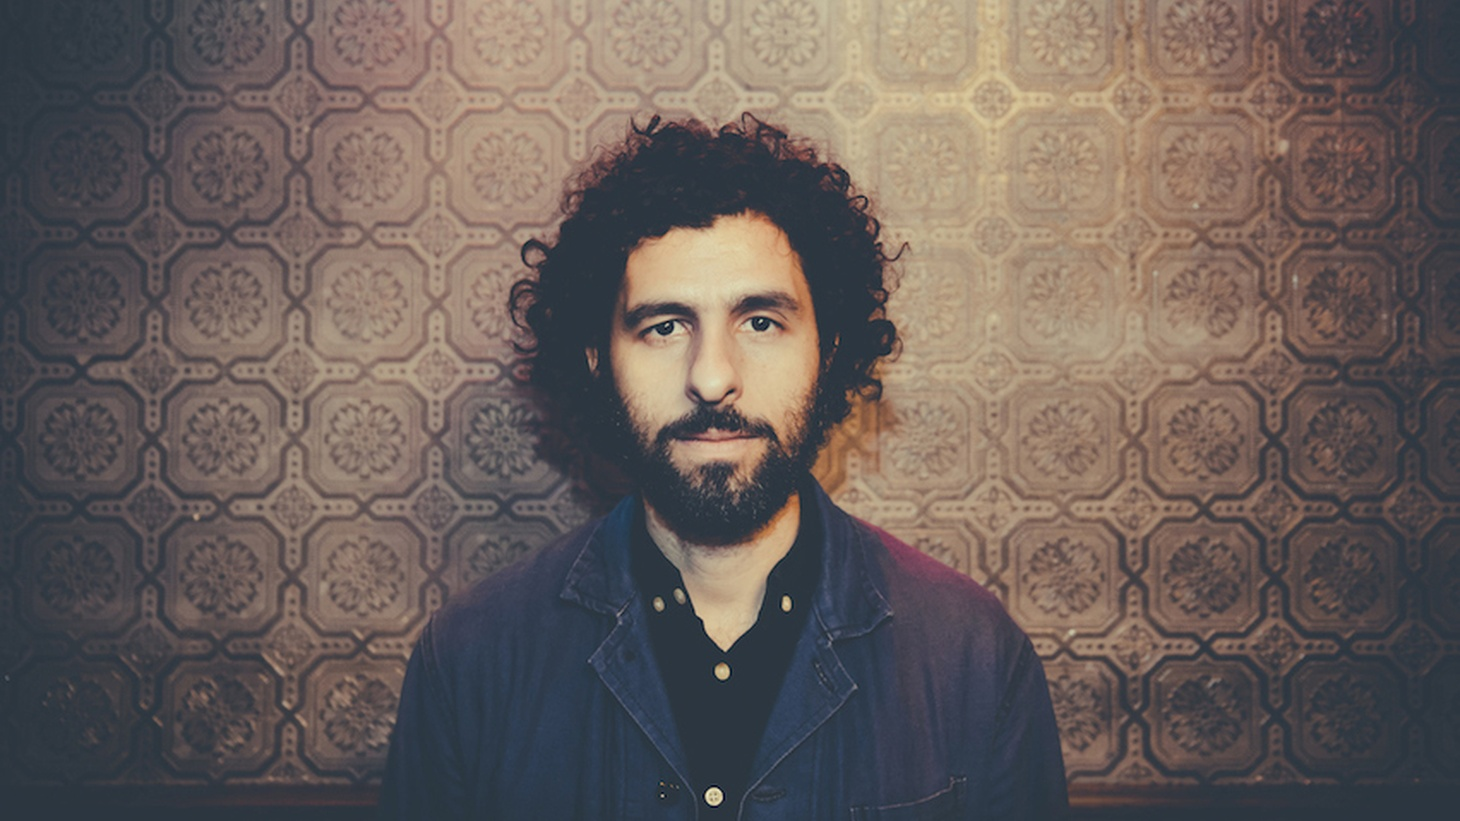 On a recent visit to Morning Becomes Eclectic, time ran out before José González could play his cover of a song that he holds dear.